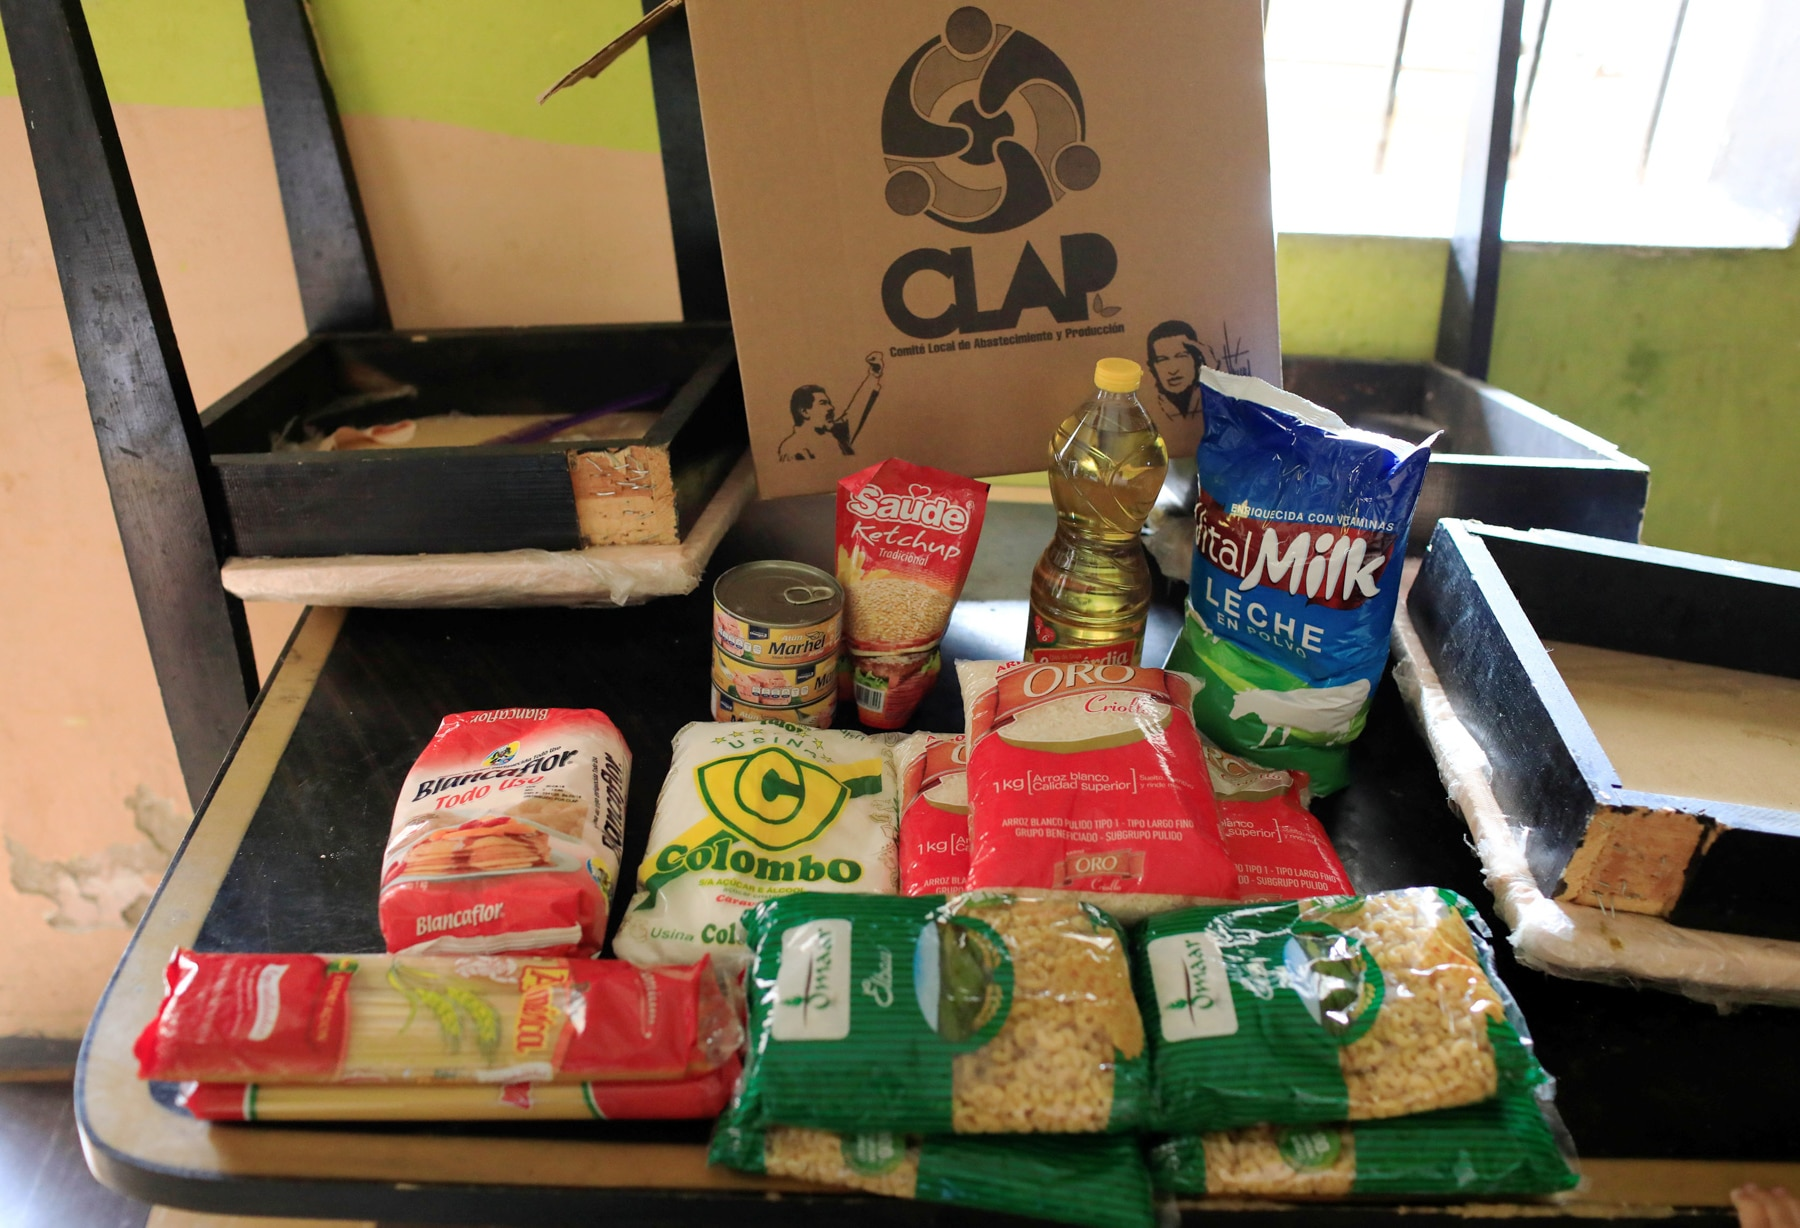 Contents of a box of food sitting on a table (© Marco Bello/Reuters)